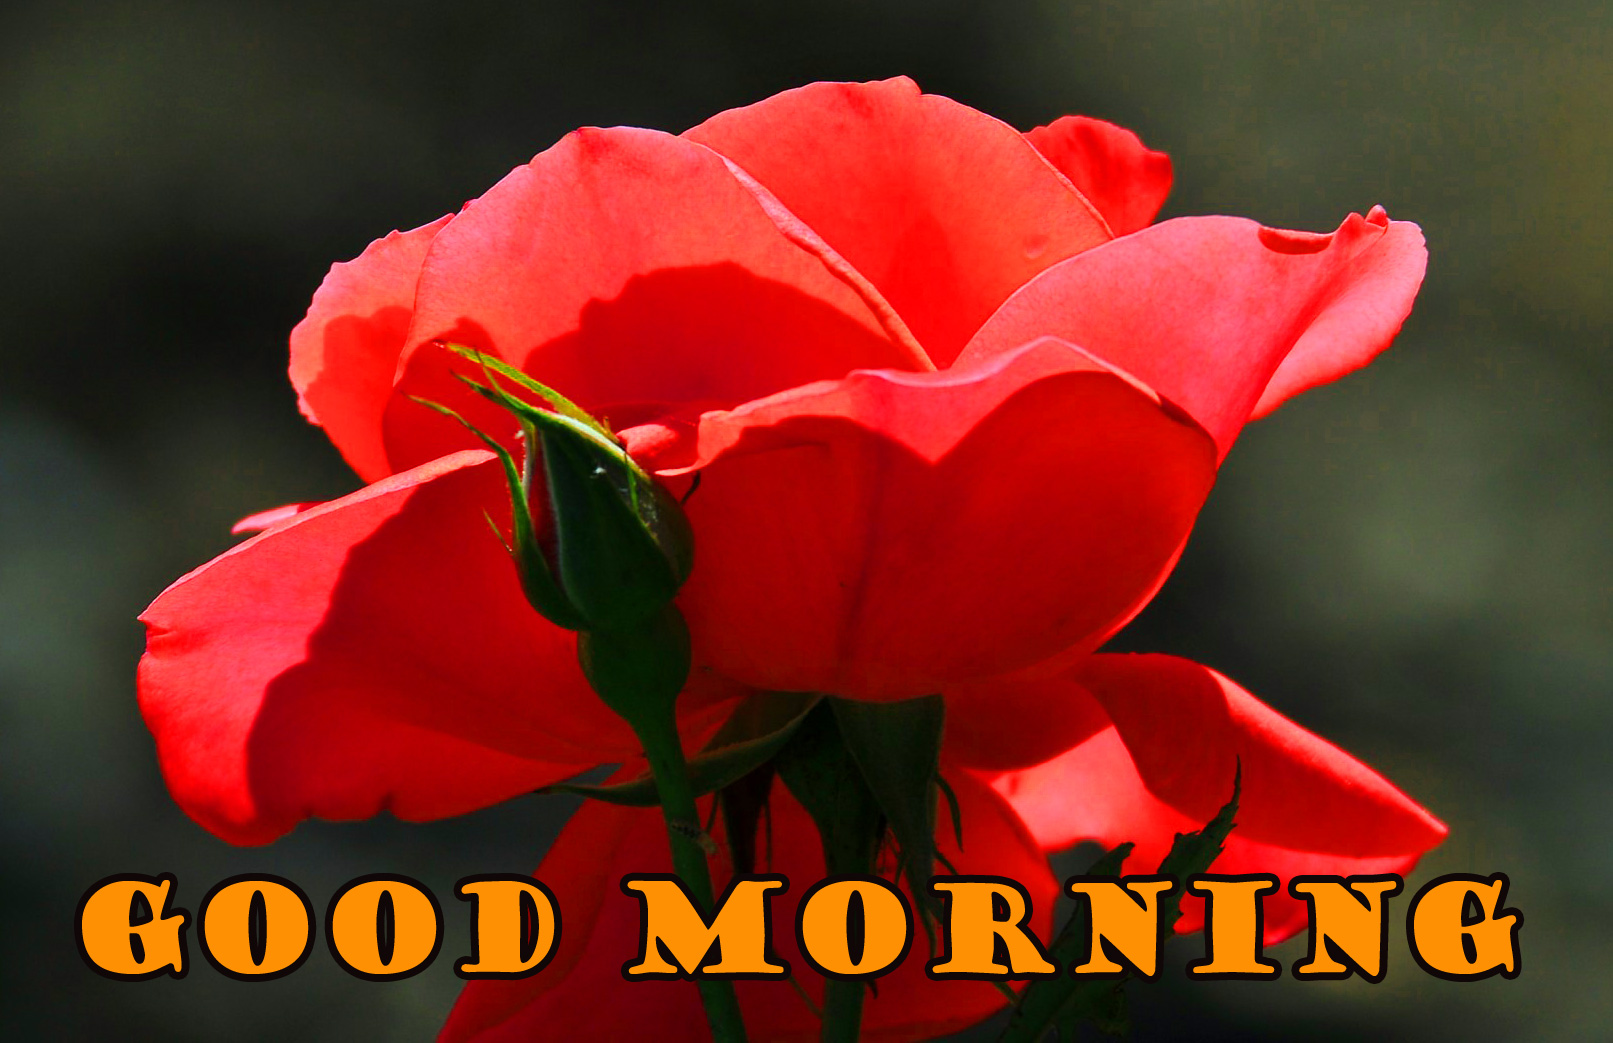 Good Morning Red Rose Images Photo Wallpaper Download